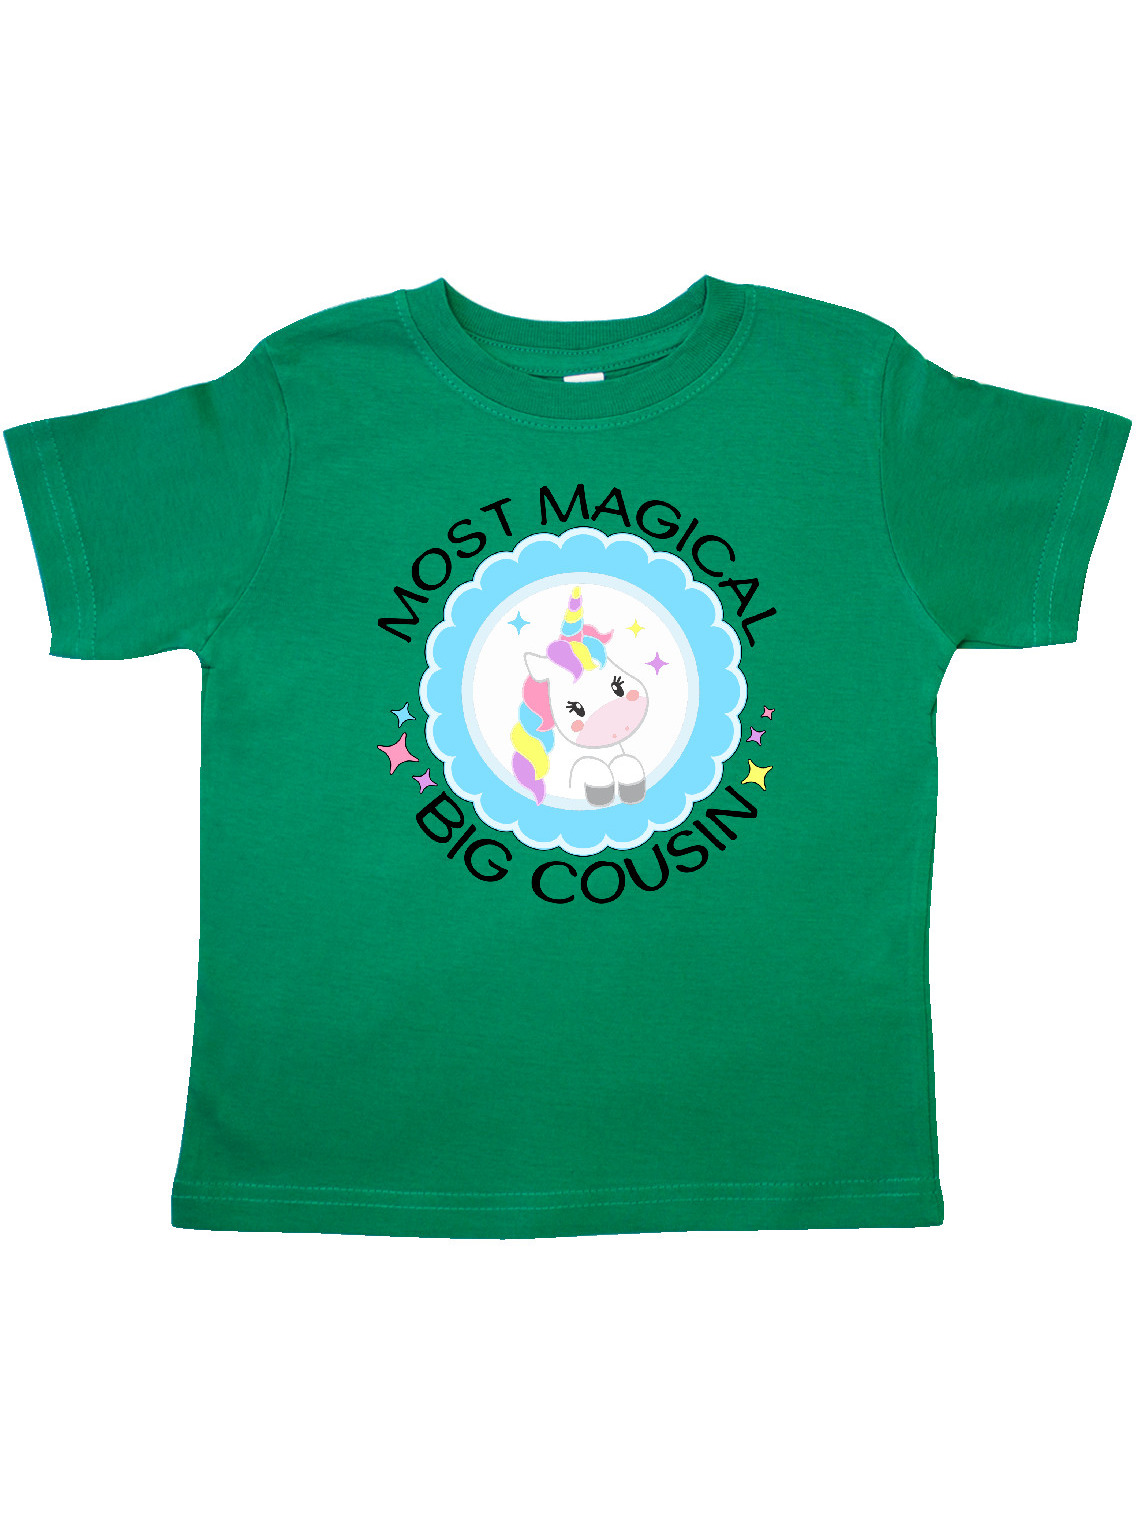 Cute Unicorn Toddler T-Shirt inktastic Most Magical Big Cousin